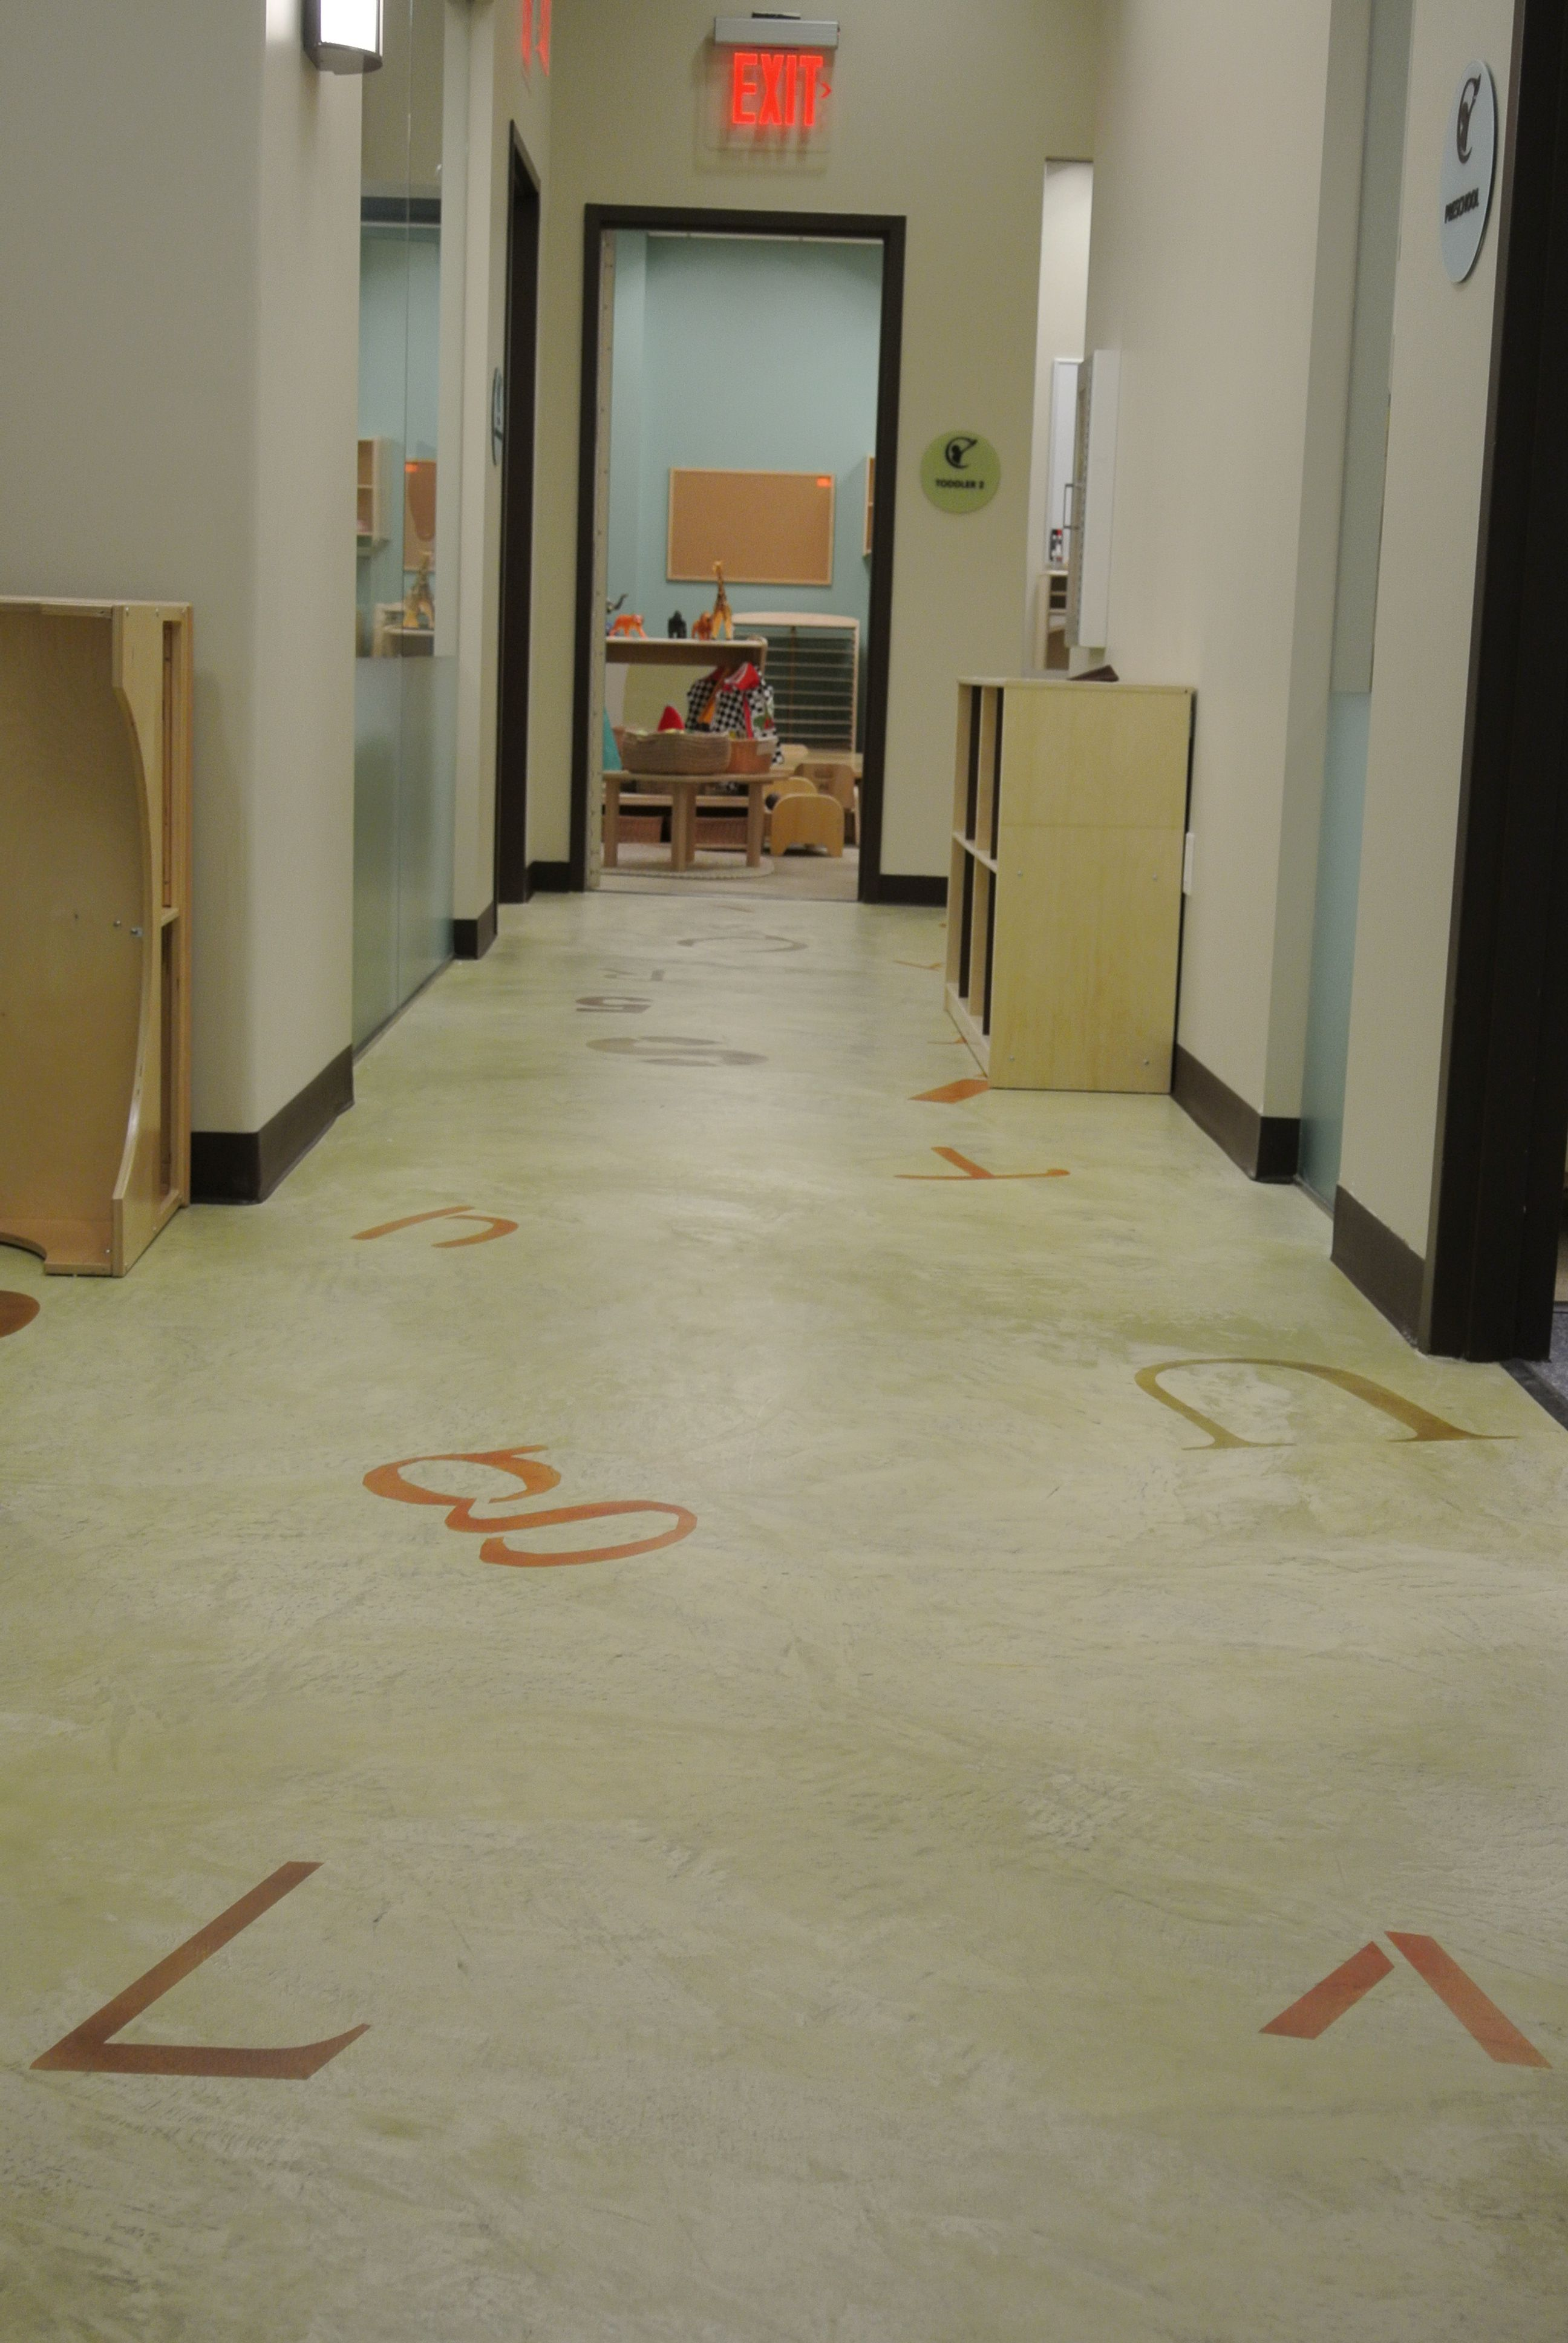 Duraamen Cementitious Floors With Stenciled Alphabet Letters In A Nyc Child Care Center